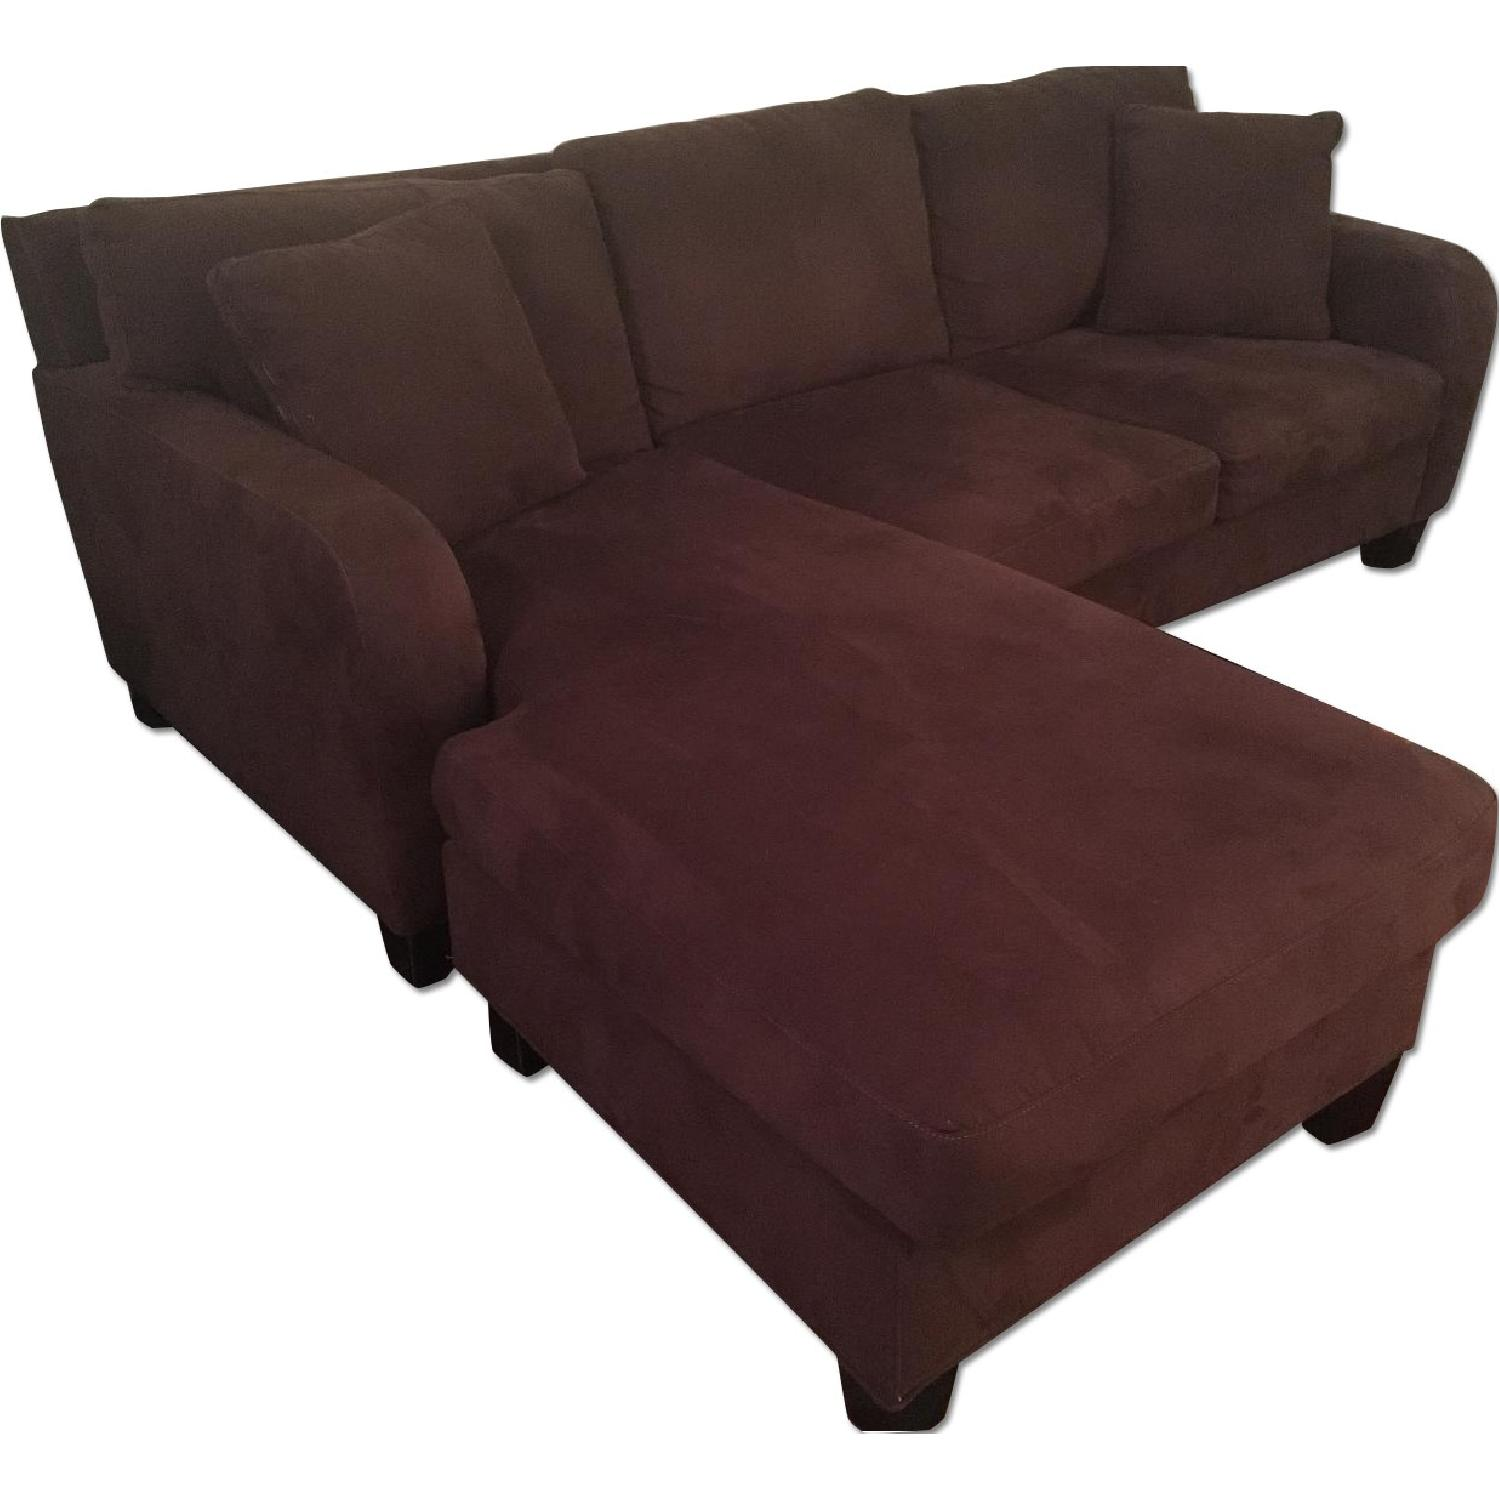 Raymour & Flanigan Dark Brown Microfiber Chaise Sectional Sofa - image-0